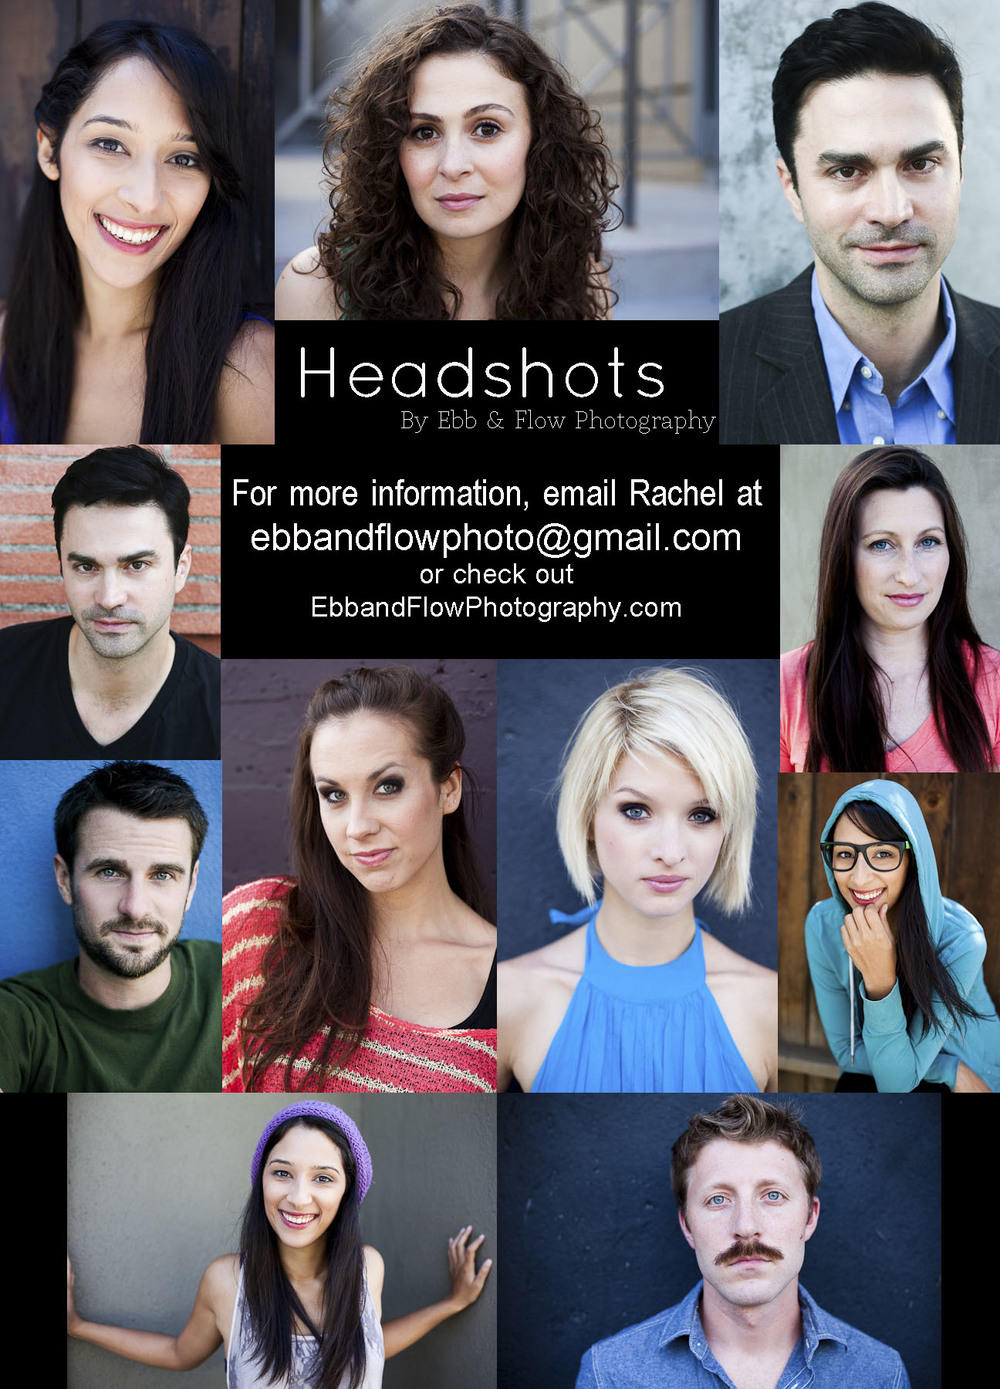 Headshots+by+Ebb+&+Flow+Photography.jpg